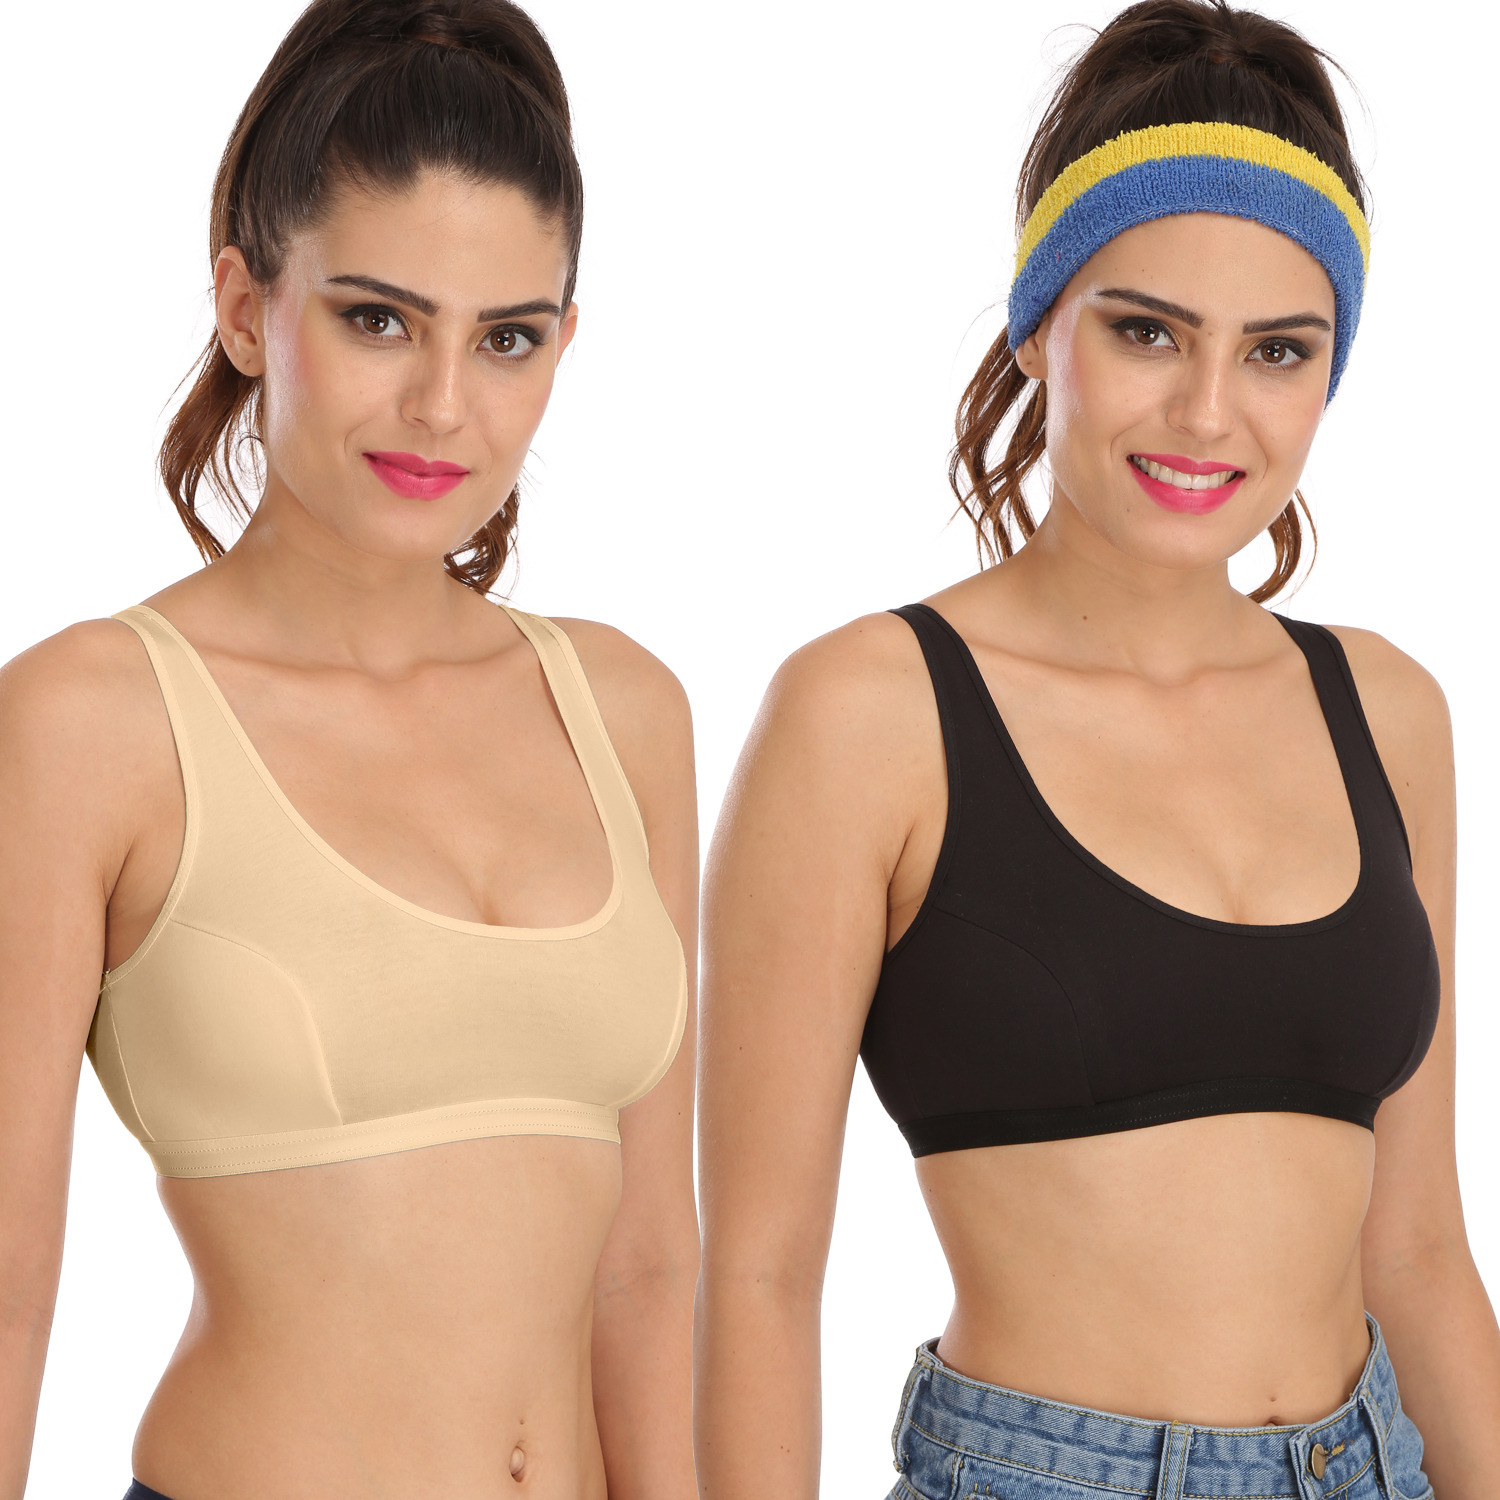 Sona Sports Bra For Gym & Yoga Sport Top Skin & Black Cotton Non-Padded Sports Bra (pack of 2)